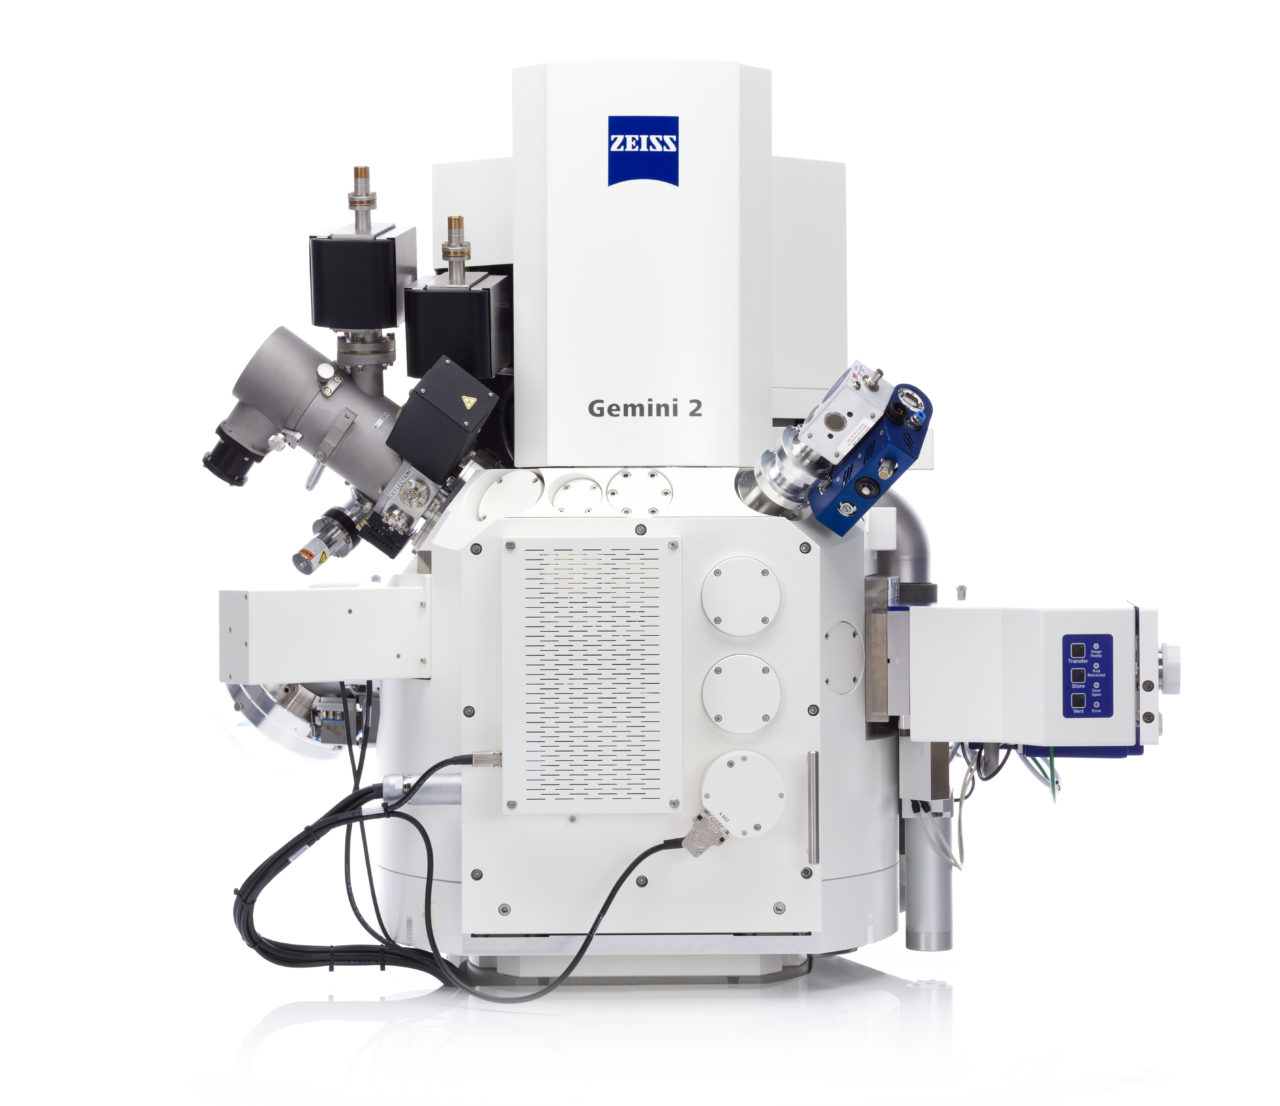 focused ion beam systems basics and applications